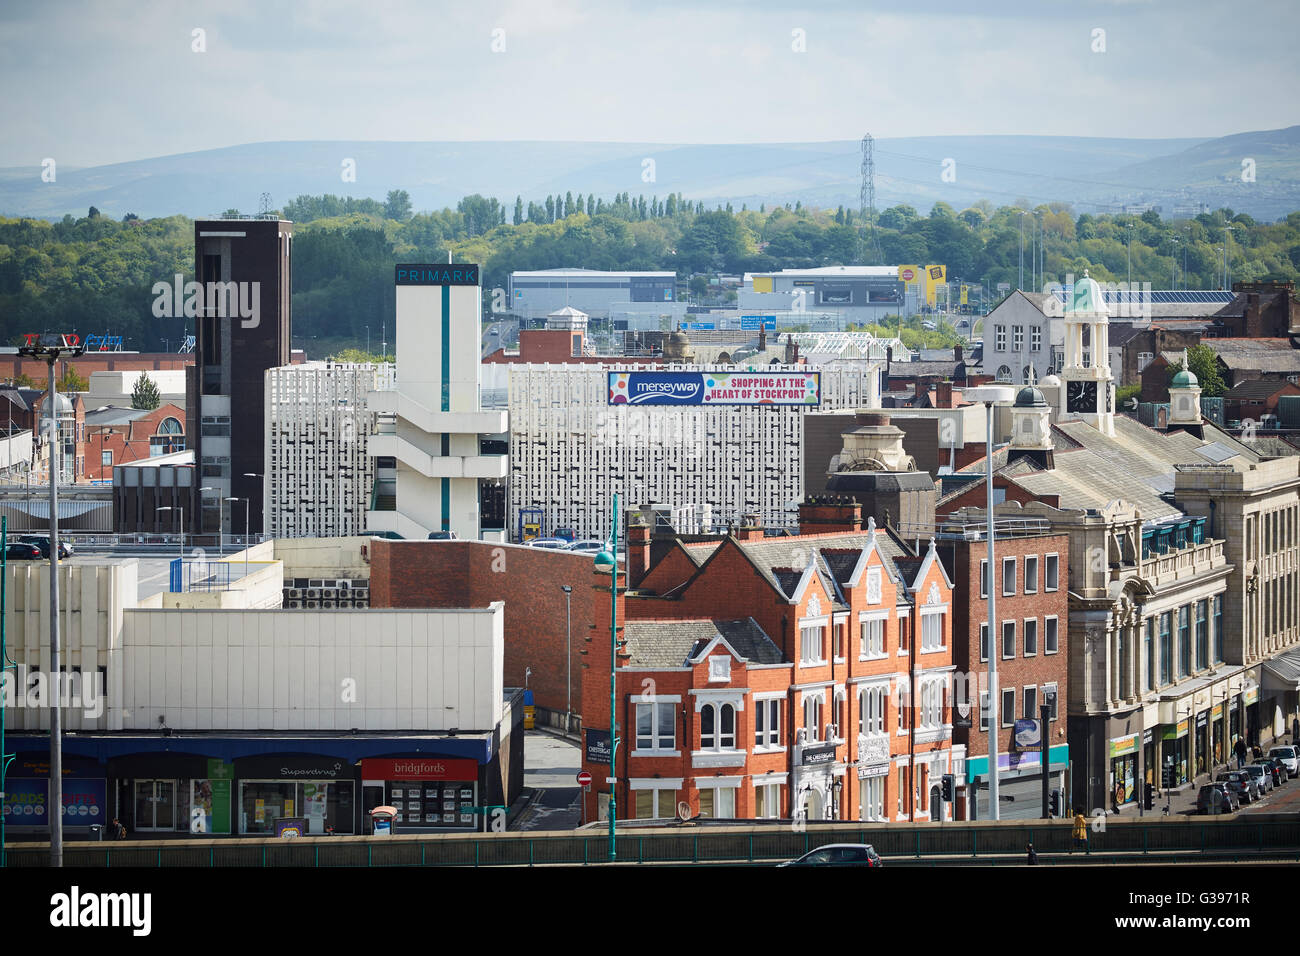 Stockport Merseyway shopping precinct town centre  Chester gate a6 road view beyond trees - Stock Image